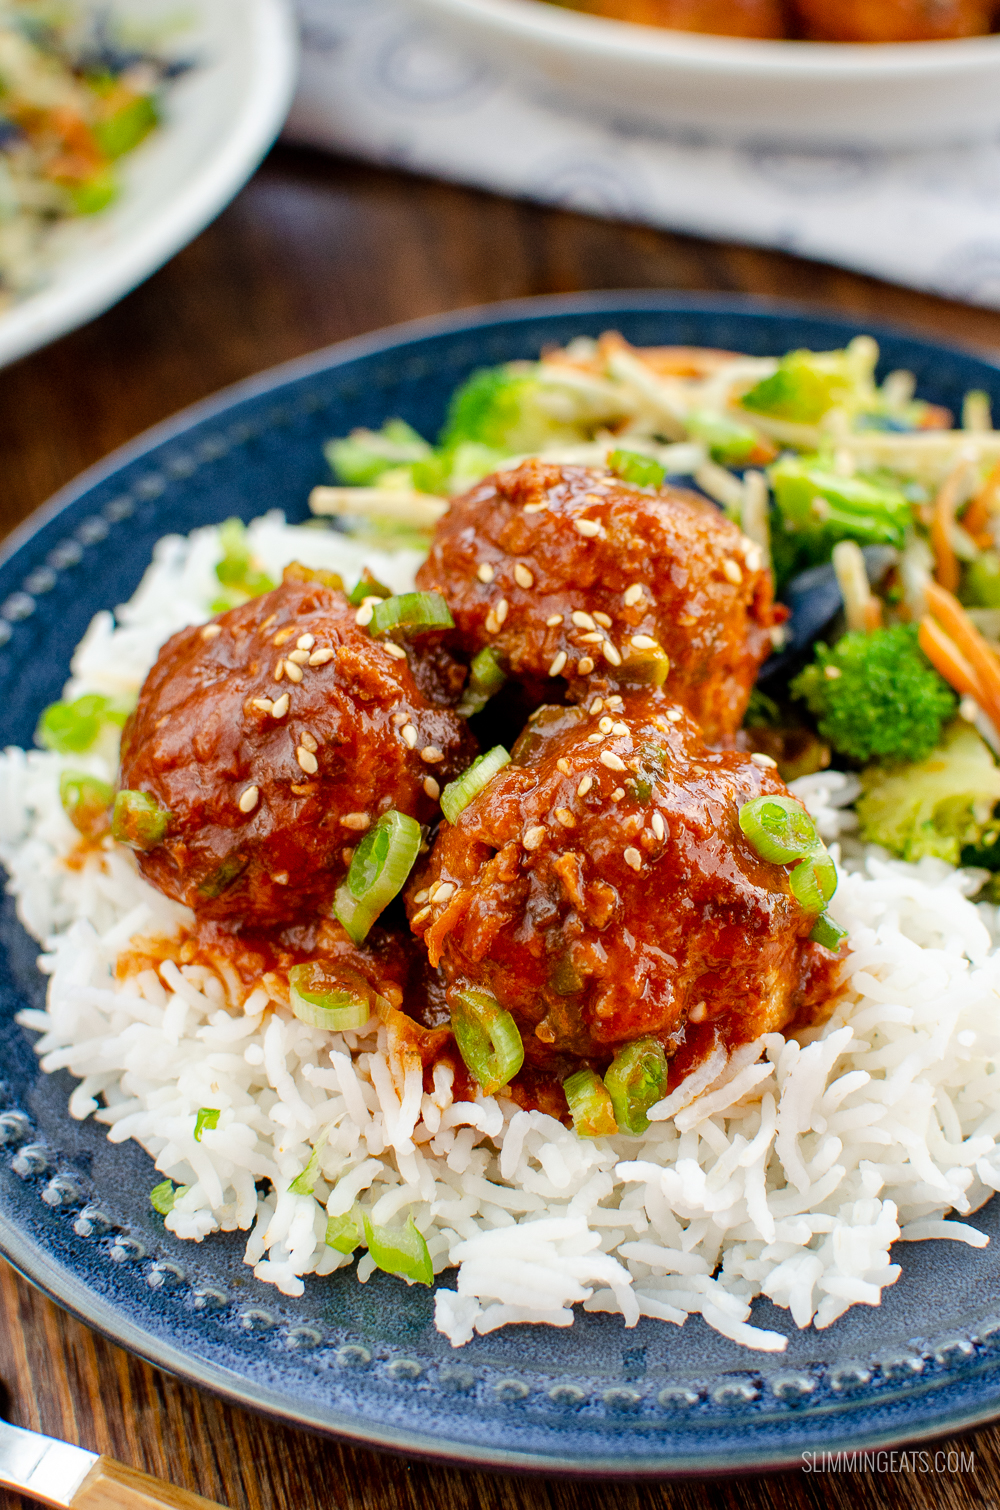 firecracker chicken meatballs on blue plate with rice and vegetables